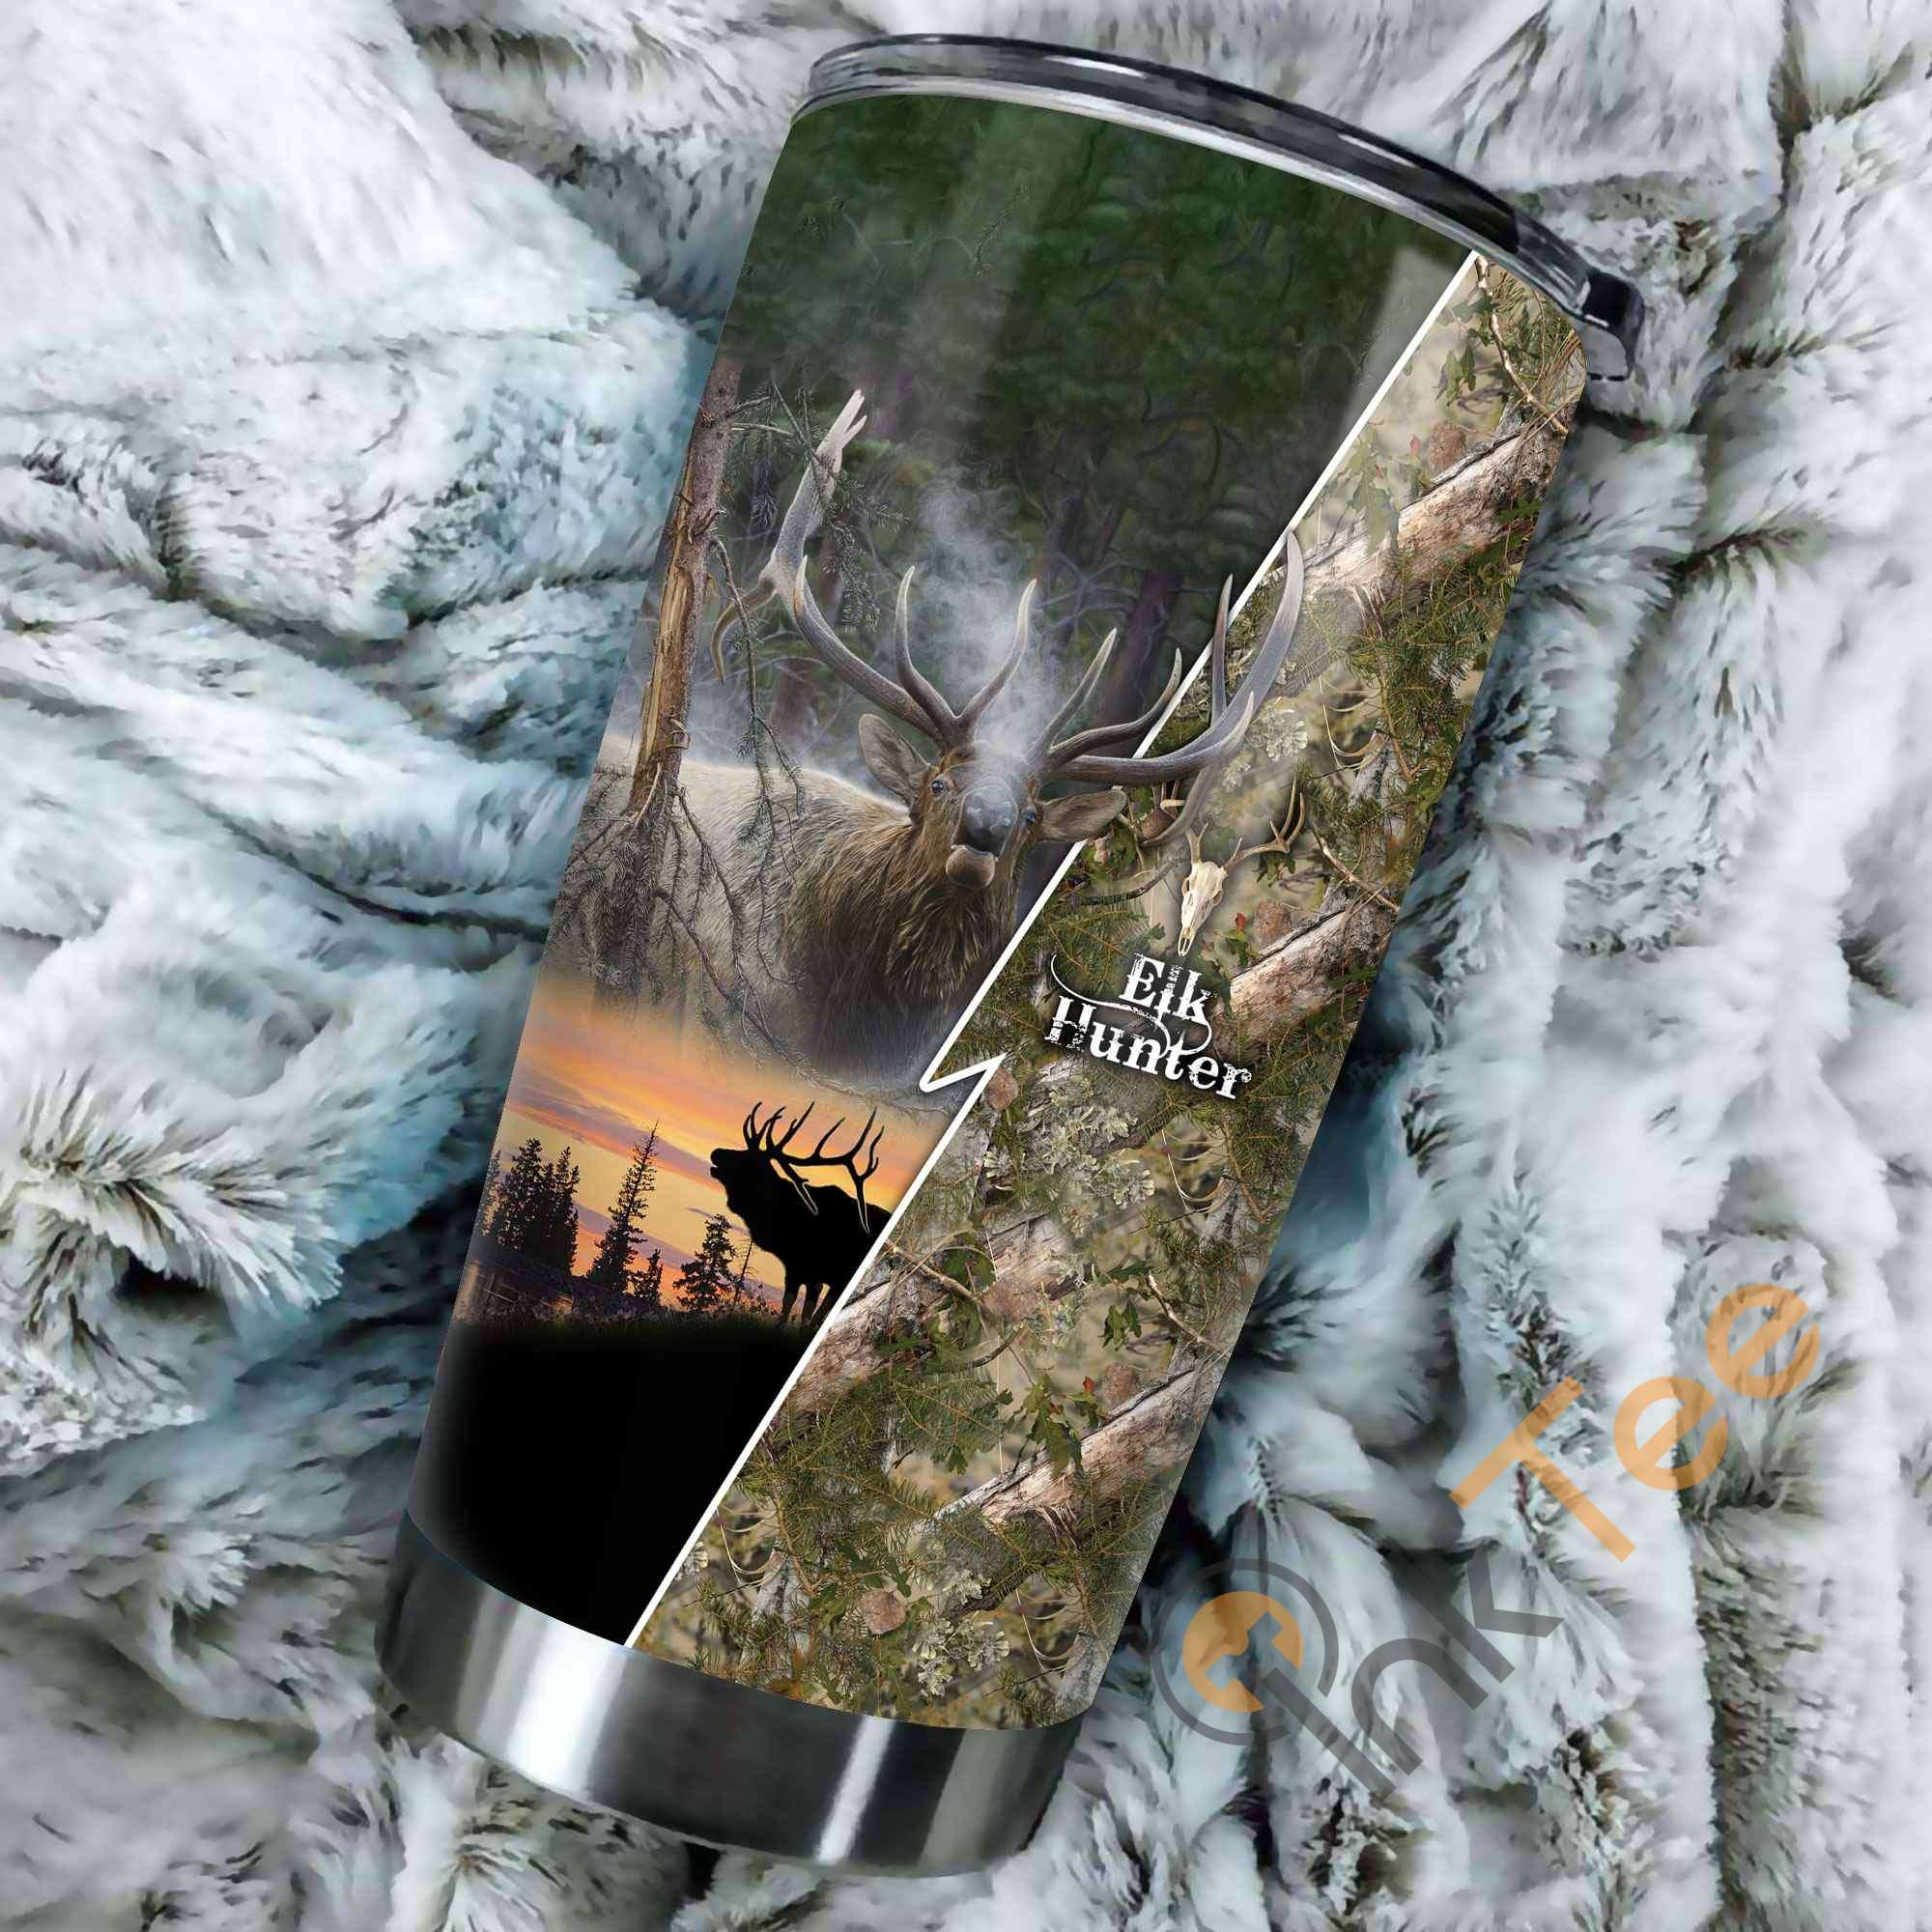 Elk Hunting Amazon Best Seller Sku 2900 Stainless Steel Tumbler